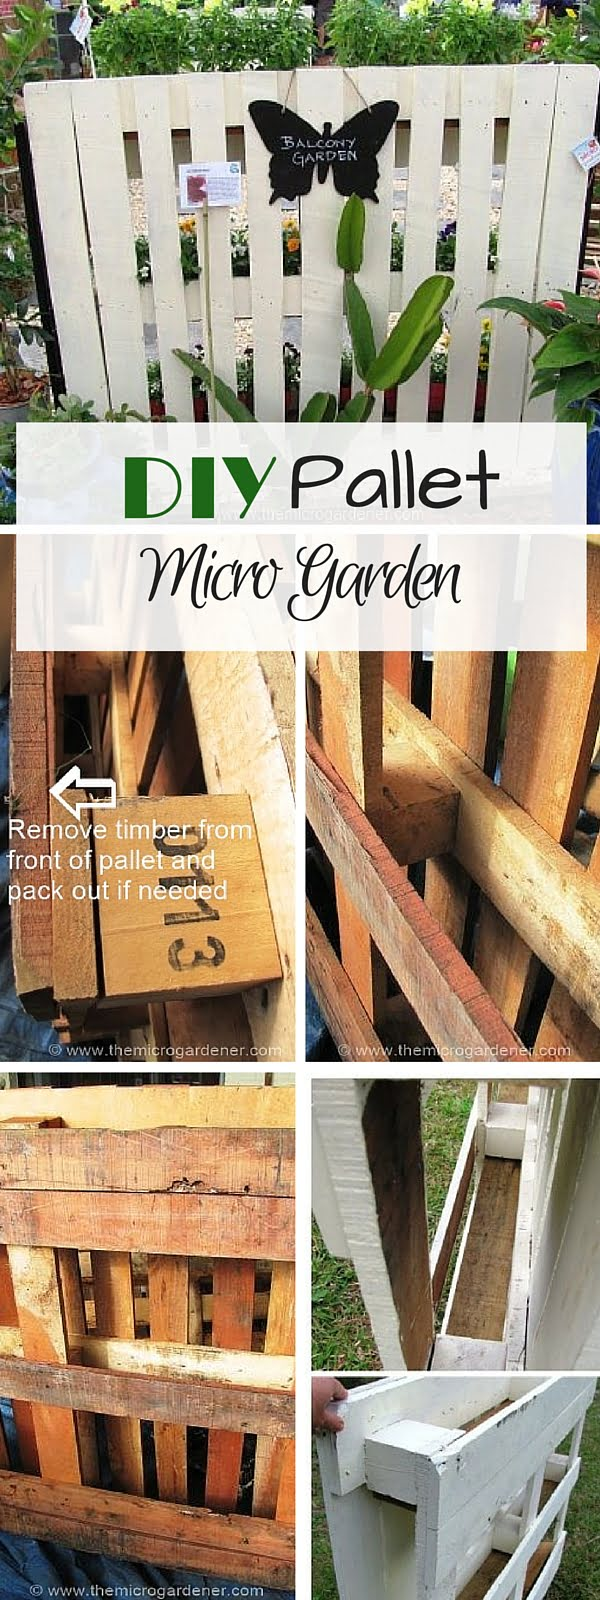 Check out the tutorial: #DIY Pallet Micro Garden